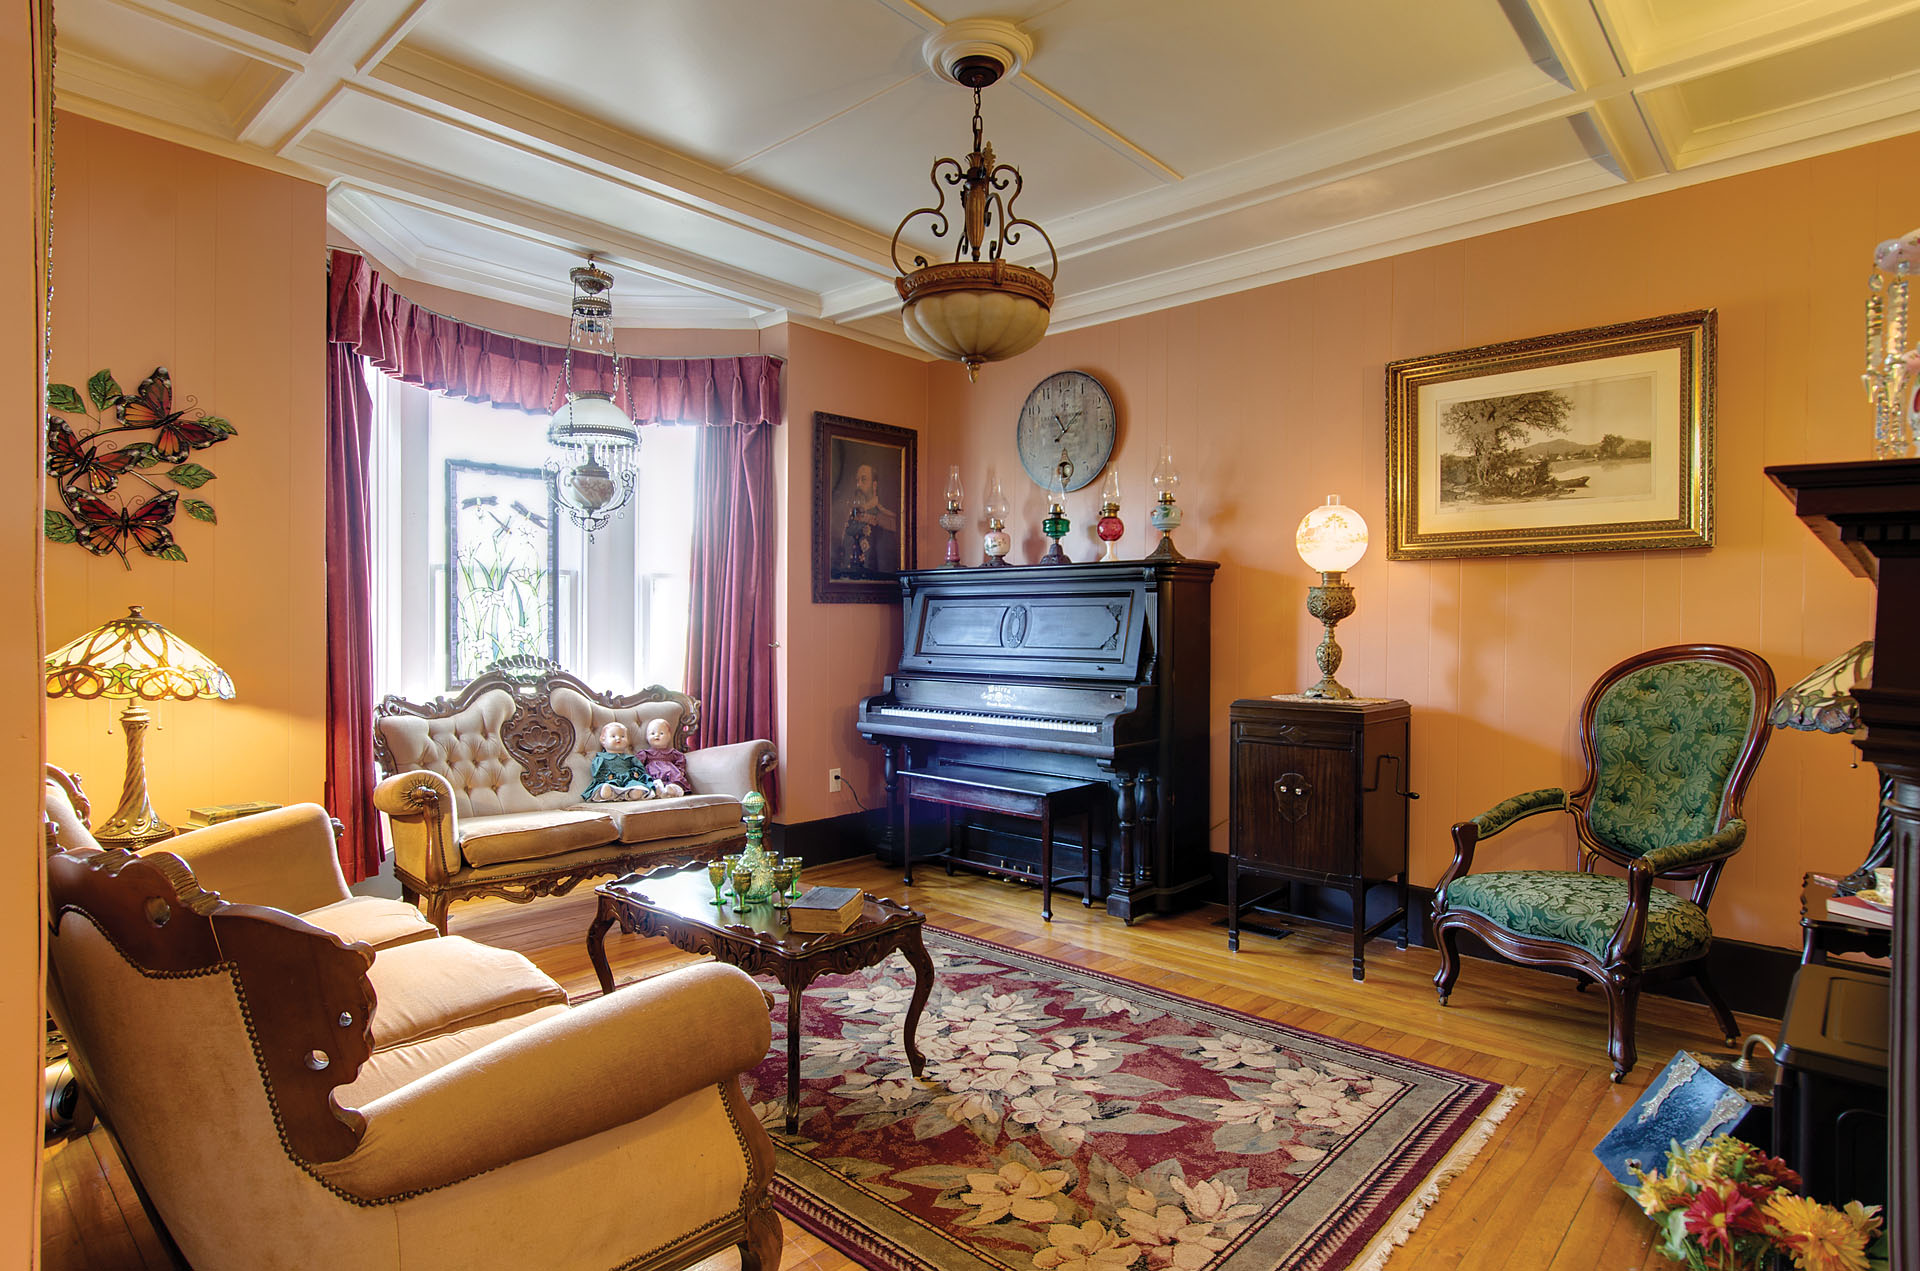 Home Tour Restored Victorian Charmer In Rural Newfoundland Wiring Through Walls How To Fish Had The Electrician Wires Save Upstairs Were Laid Under Floorboards Each One Carefully Removed Numbered